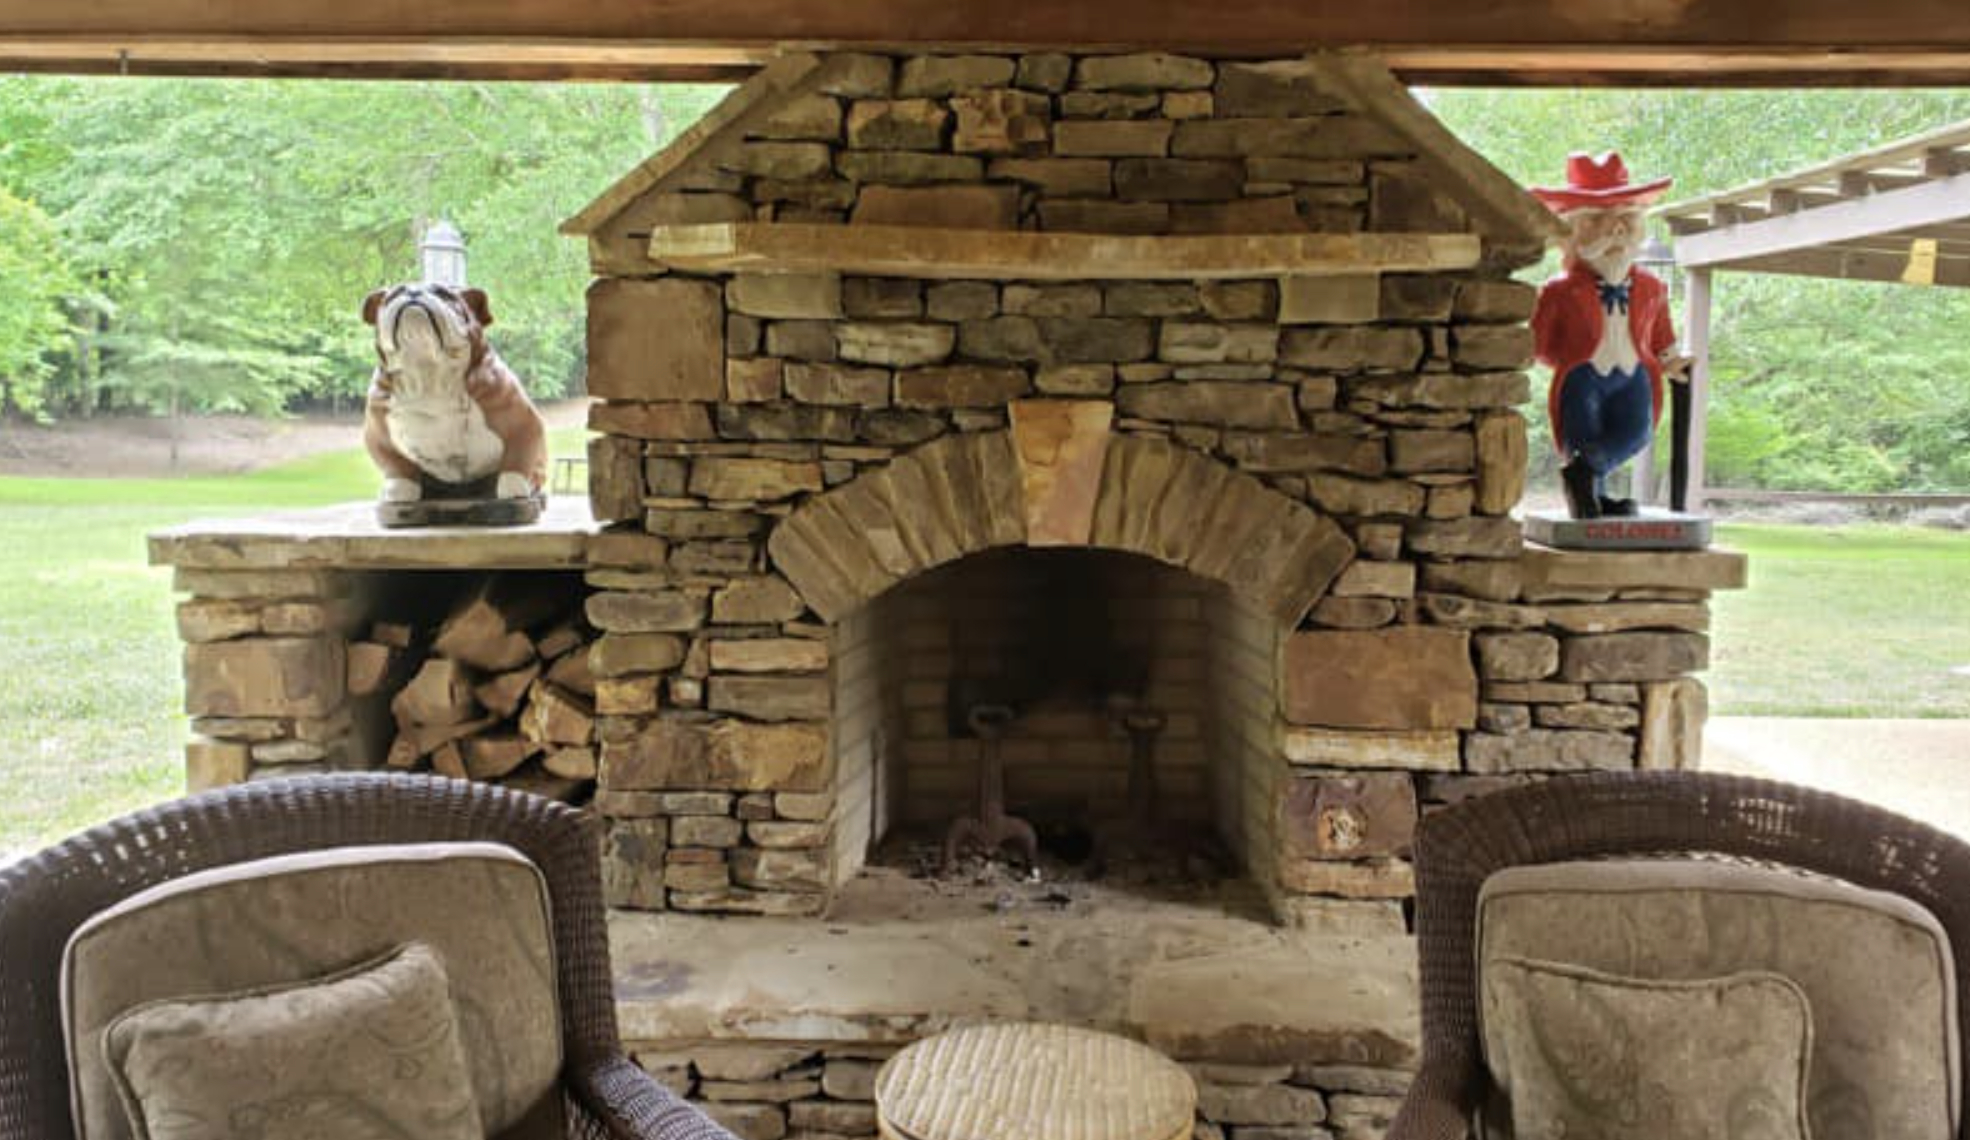 this image shows fireplace in Carlsbad, California